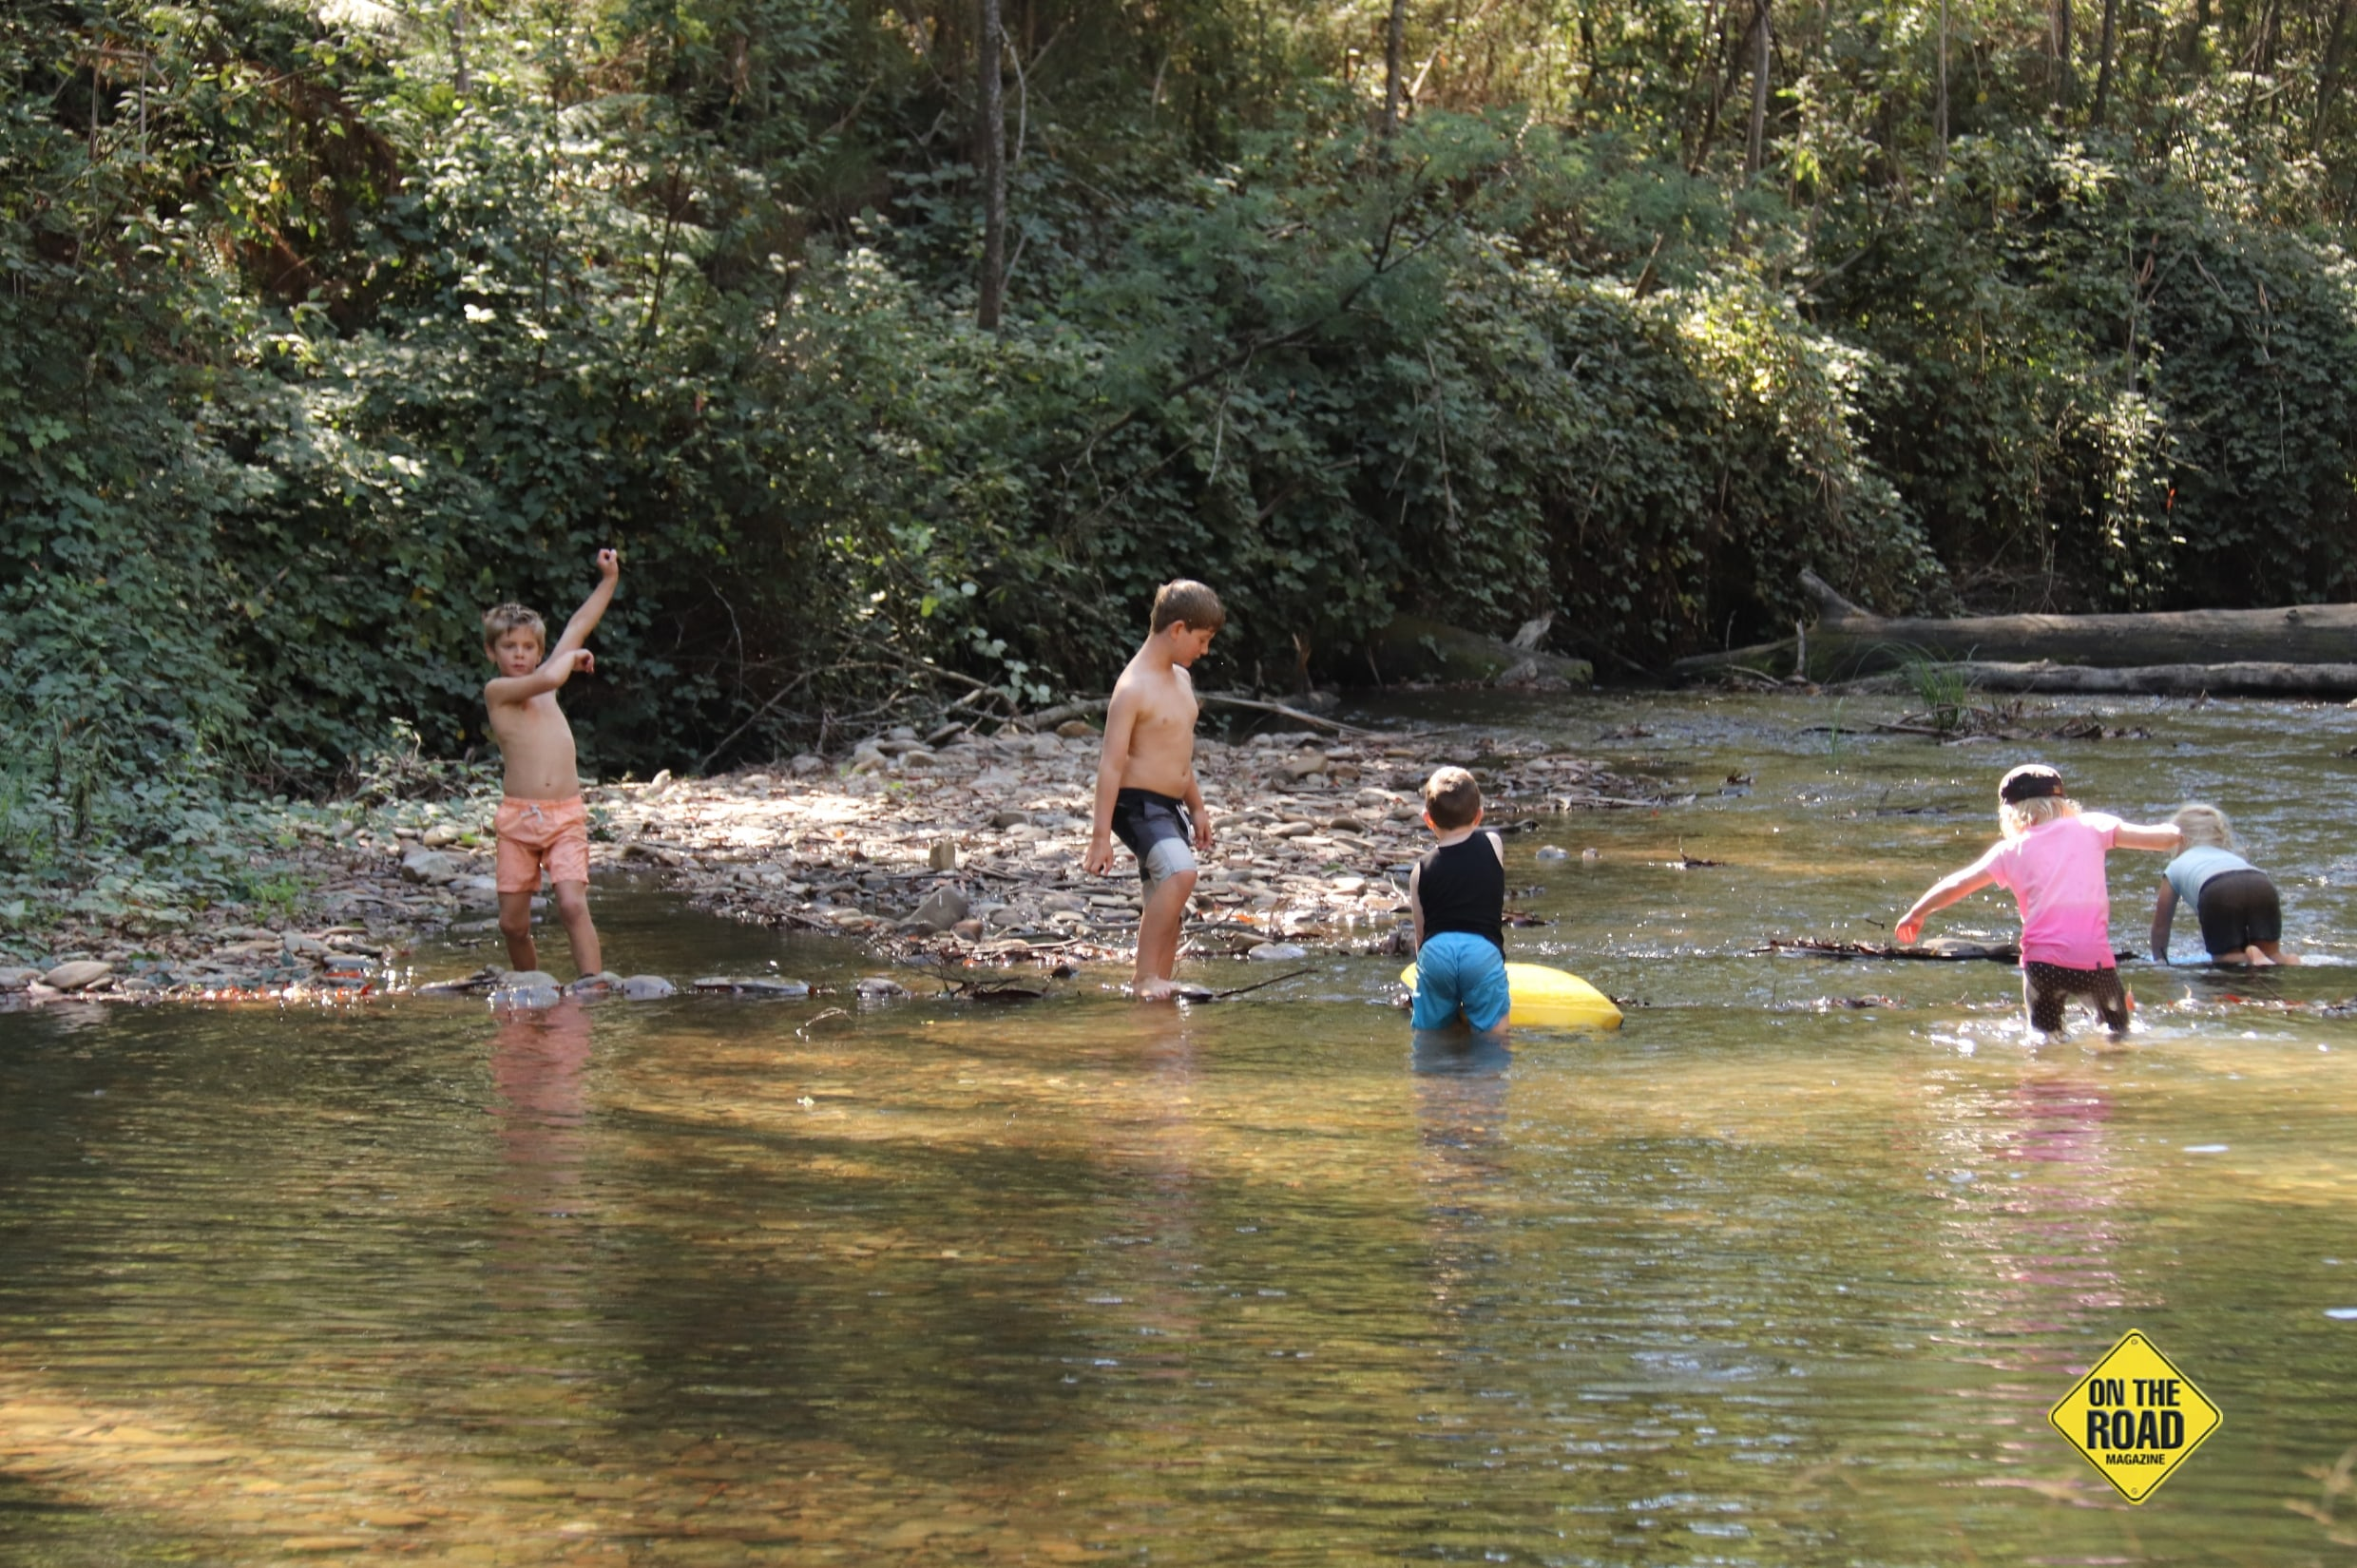 Children playing at the creek